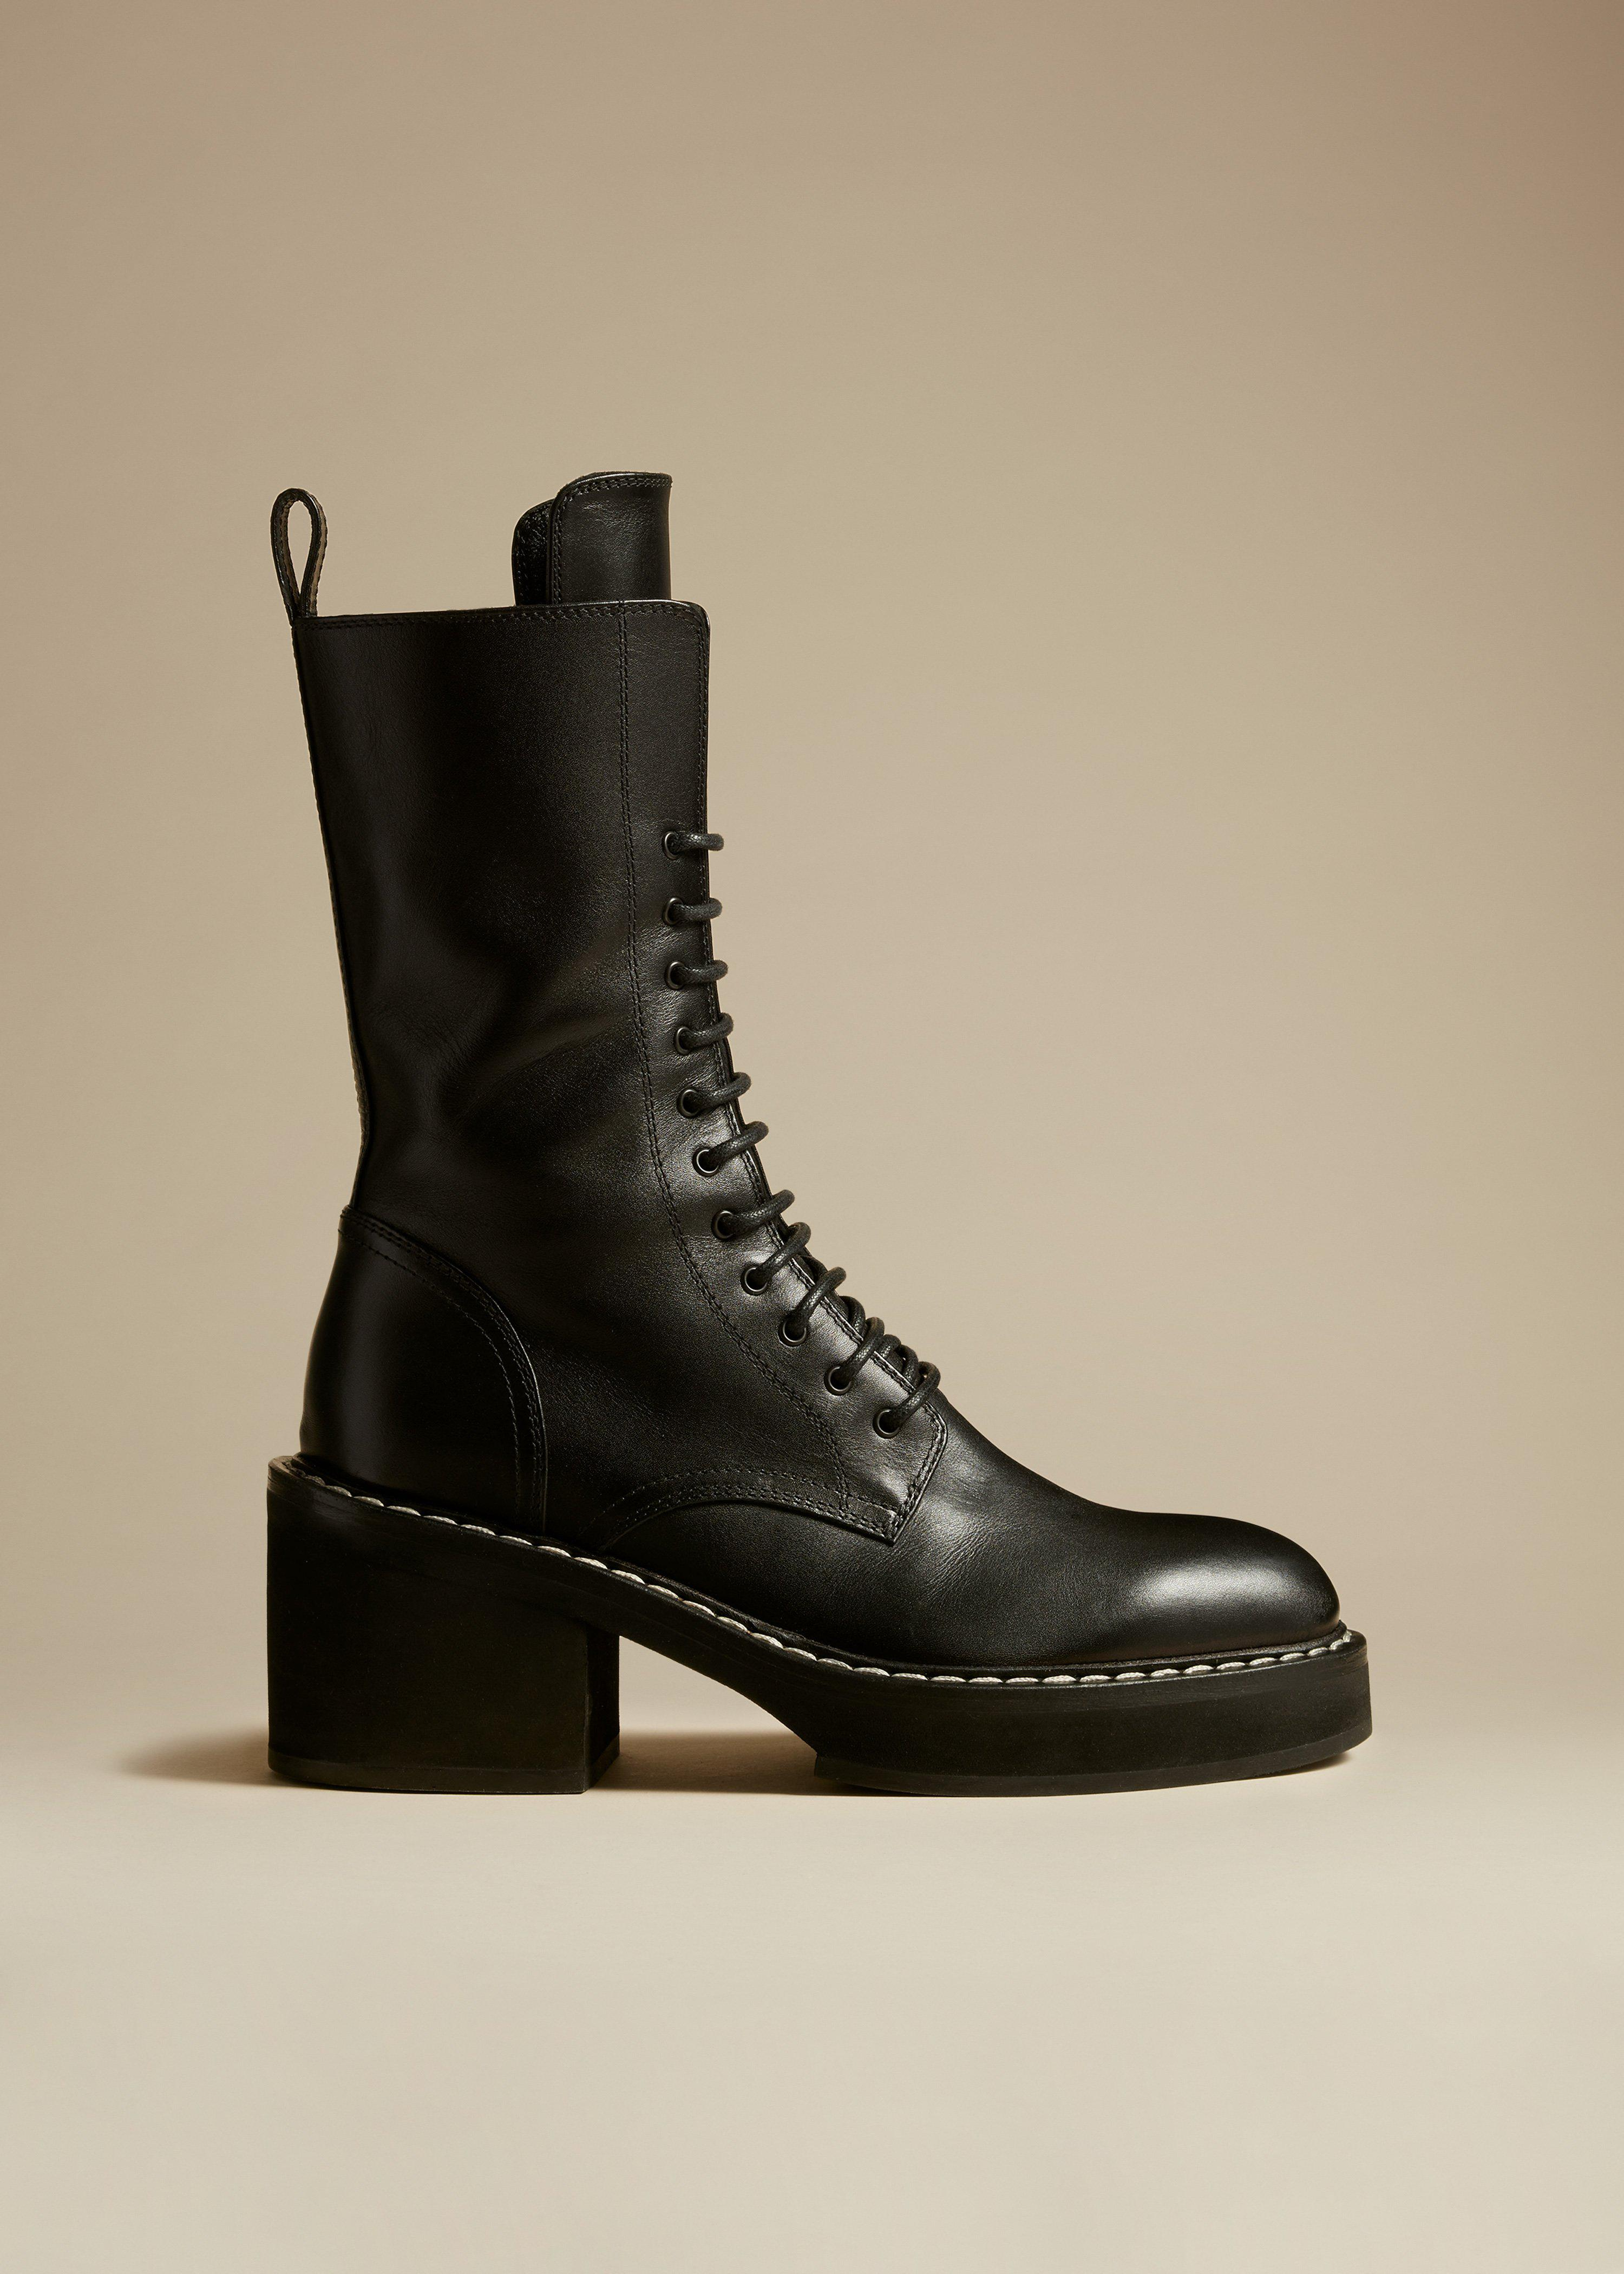 The Cody Boot in Black Leather